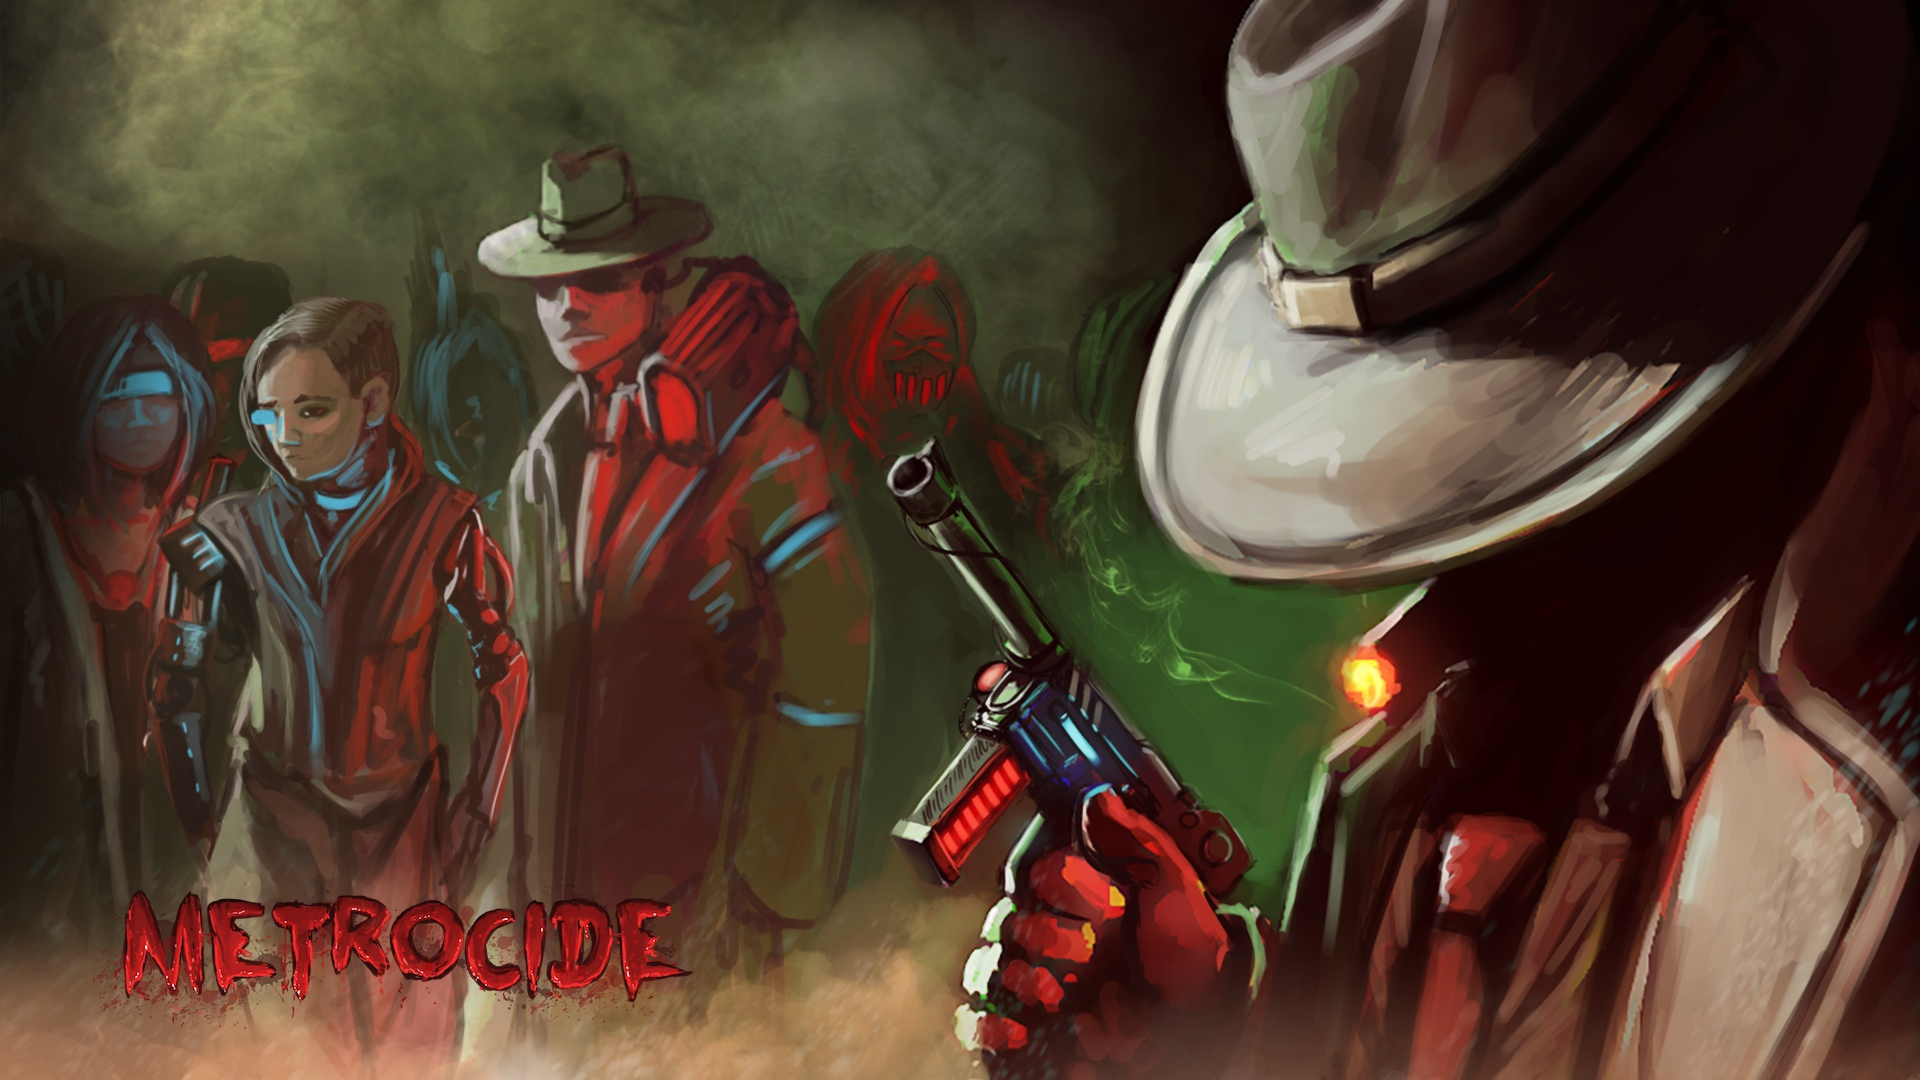 Artistry in Games Metrocide_Citizens_Wallpaper Metrocide First Impressions Review Reviews  top-down top single-player Shooter RPG retro Miami Metrocide metro isometric hotline miami Hotline Hitman hardcore ex down deus ex deus cyberpunk beast altered